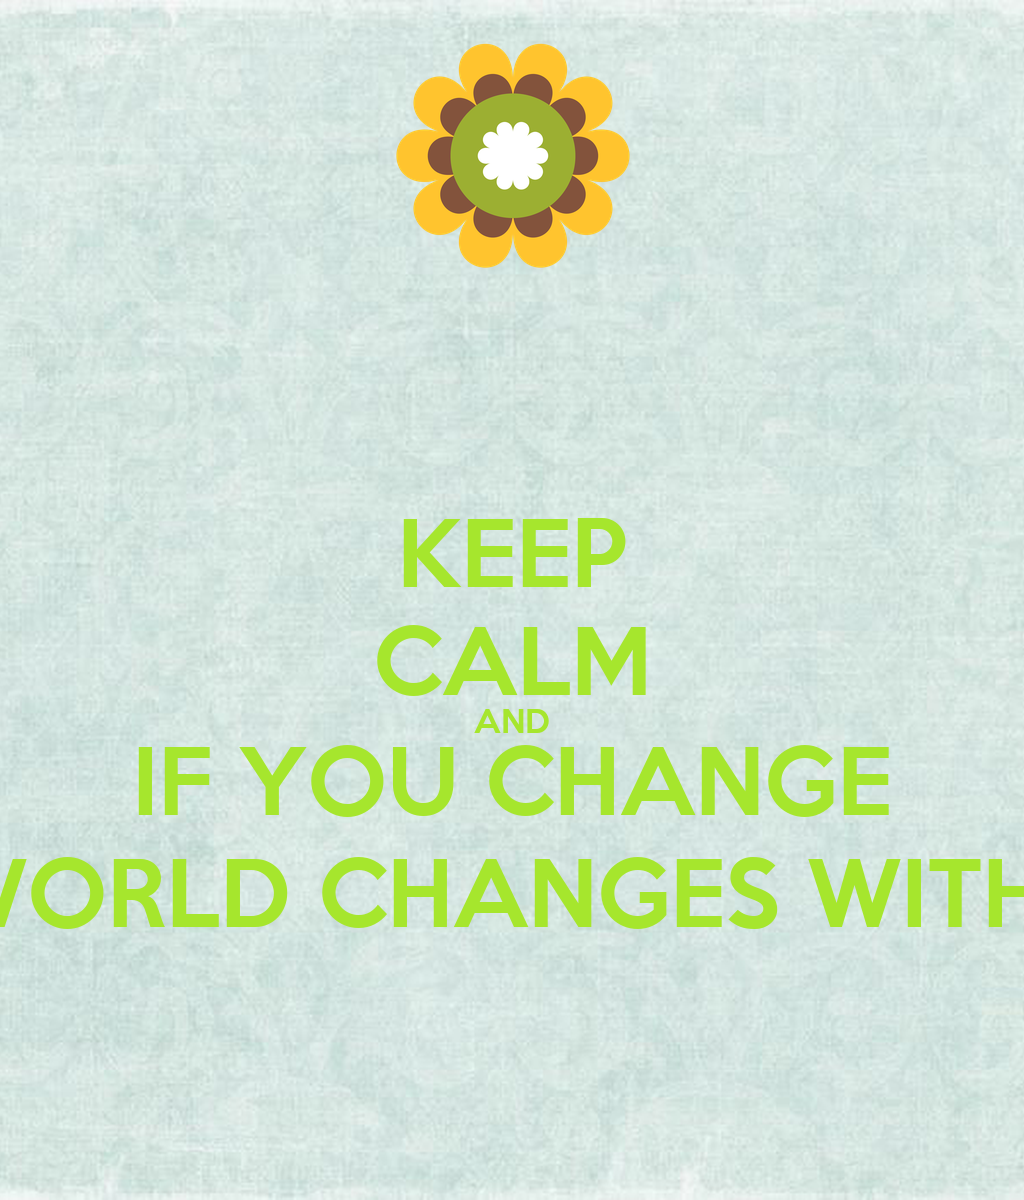 essay on changes and the world changes for you